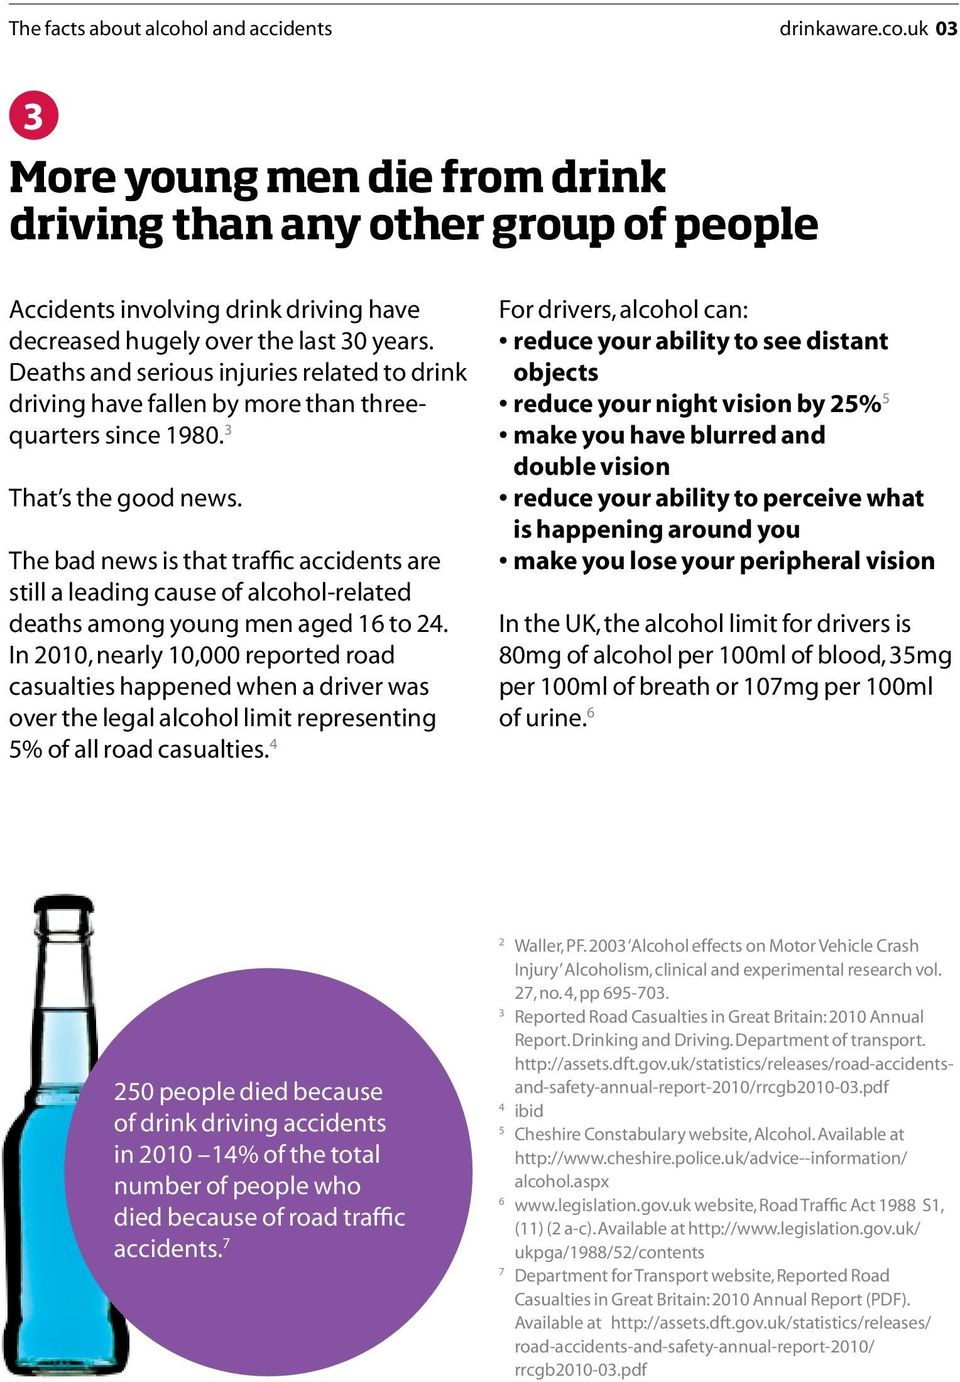 The bad news is that traffic accidents are still a leading cause of alcohol-related deaths among young men aged 16 to 24.